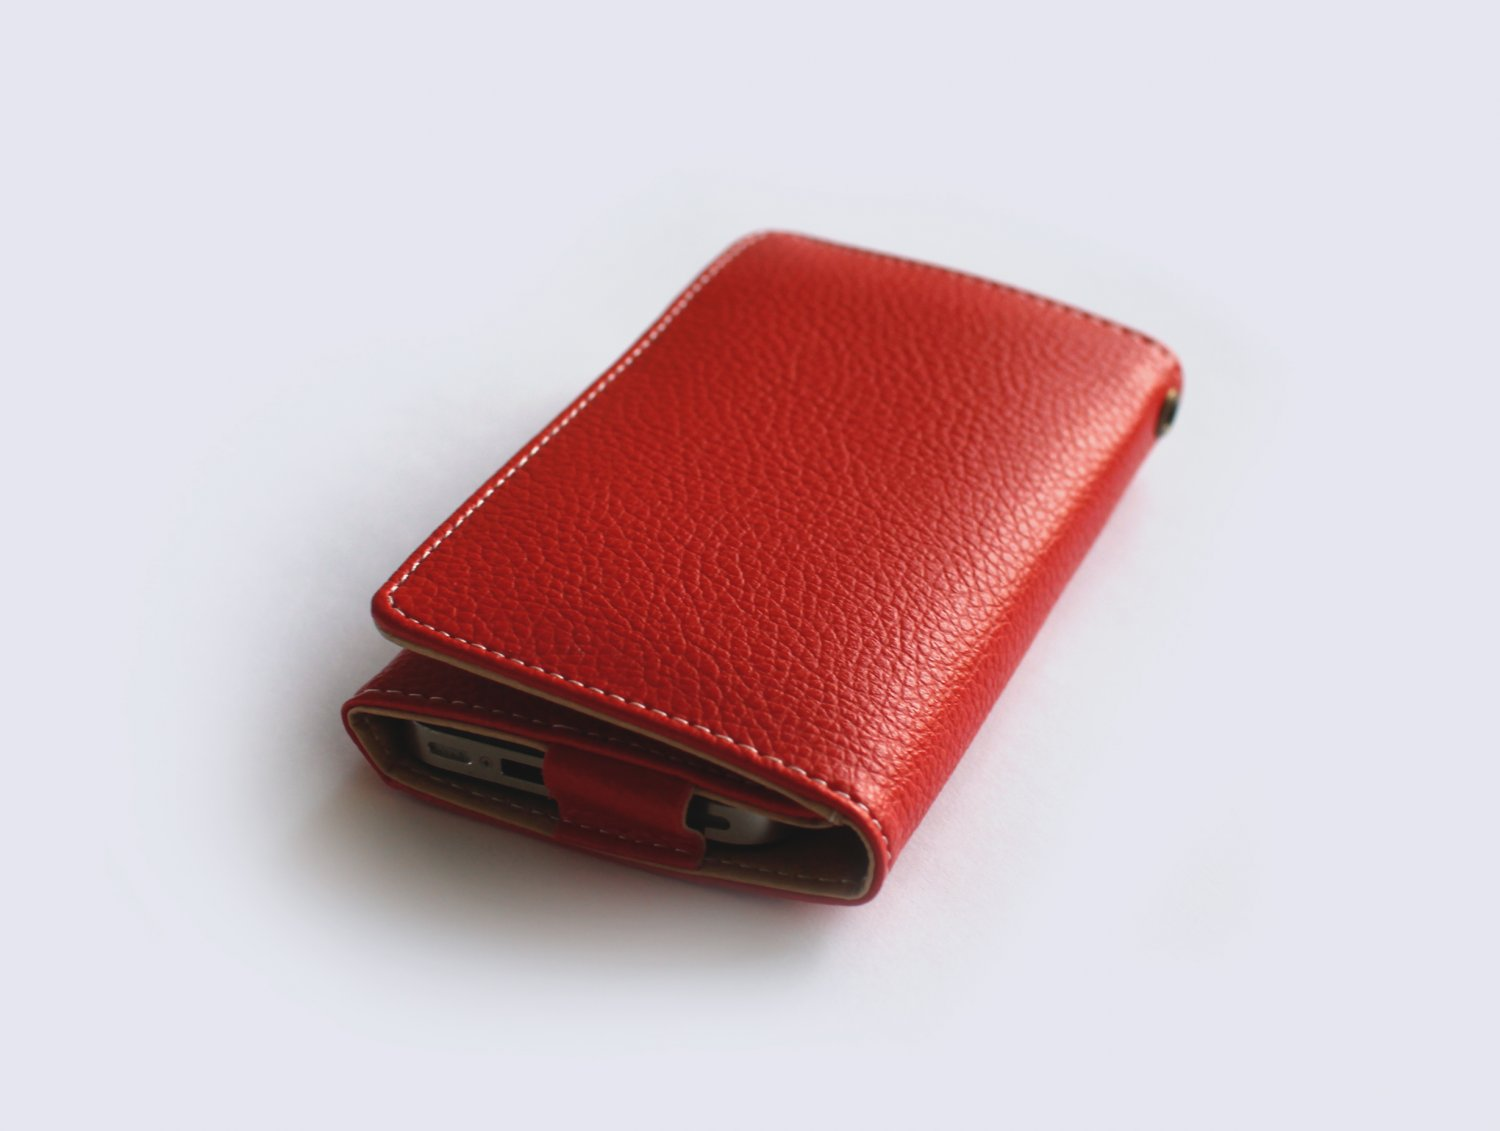 iPhone Leather Wallet - Red